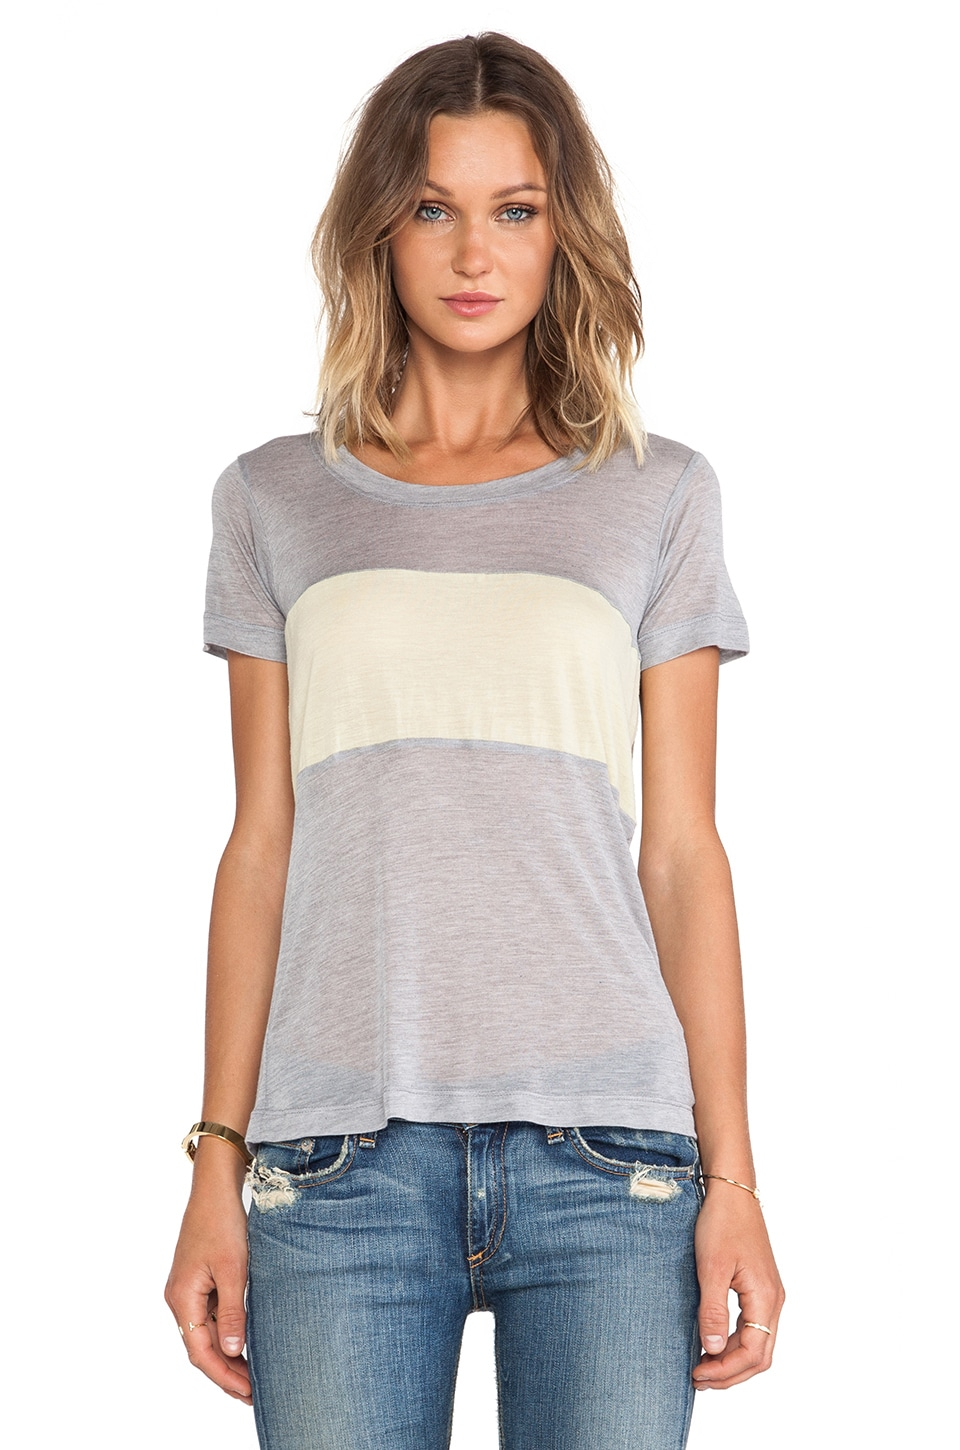 A Fine Line Colorblock Davy Tee in Heather Grey/Chartreuse